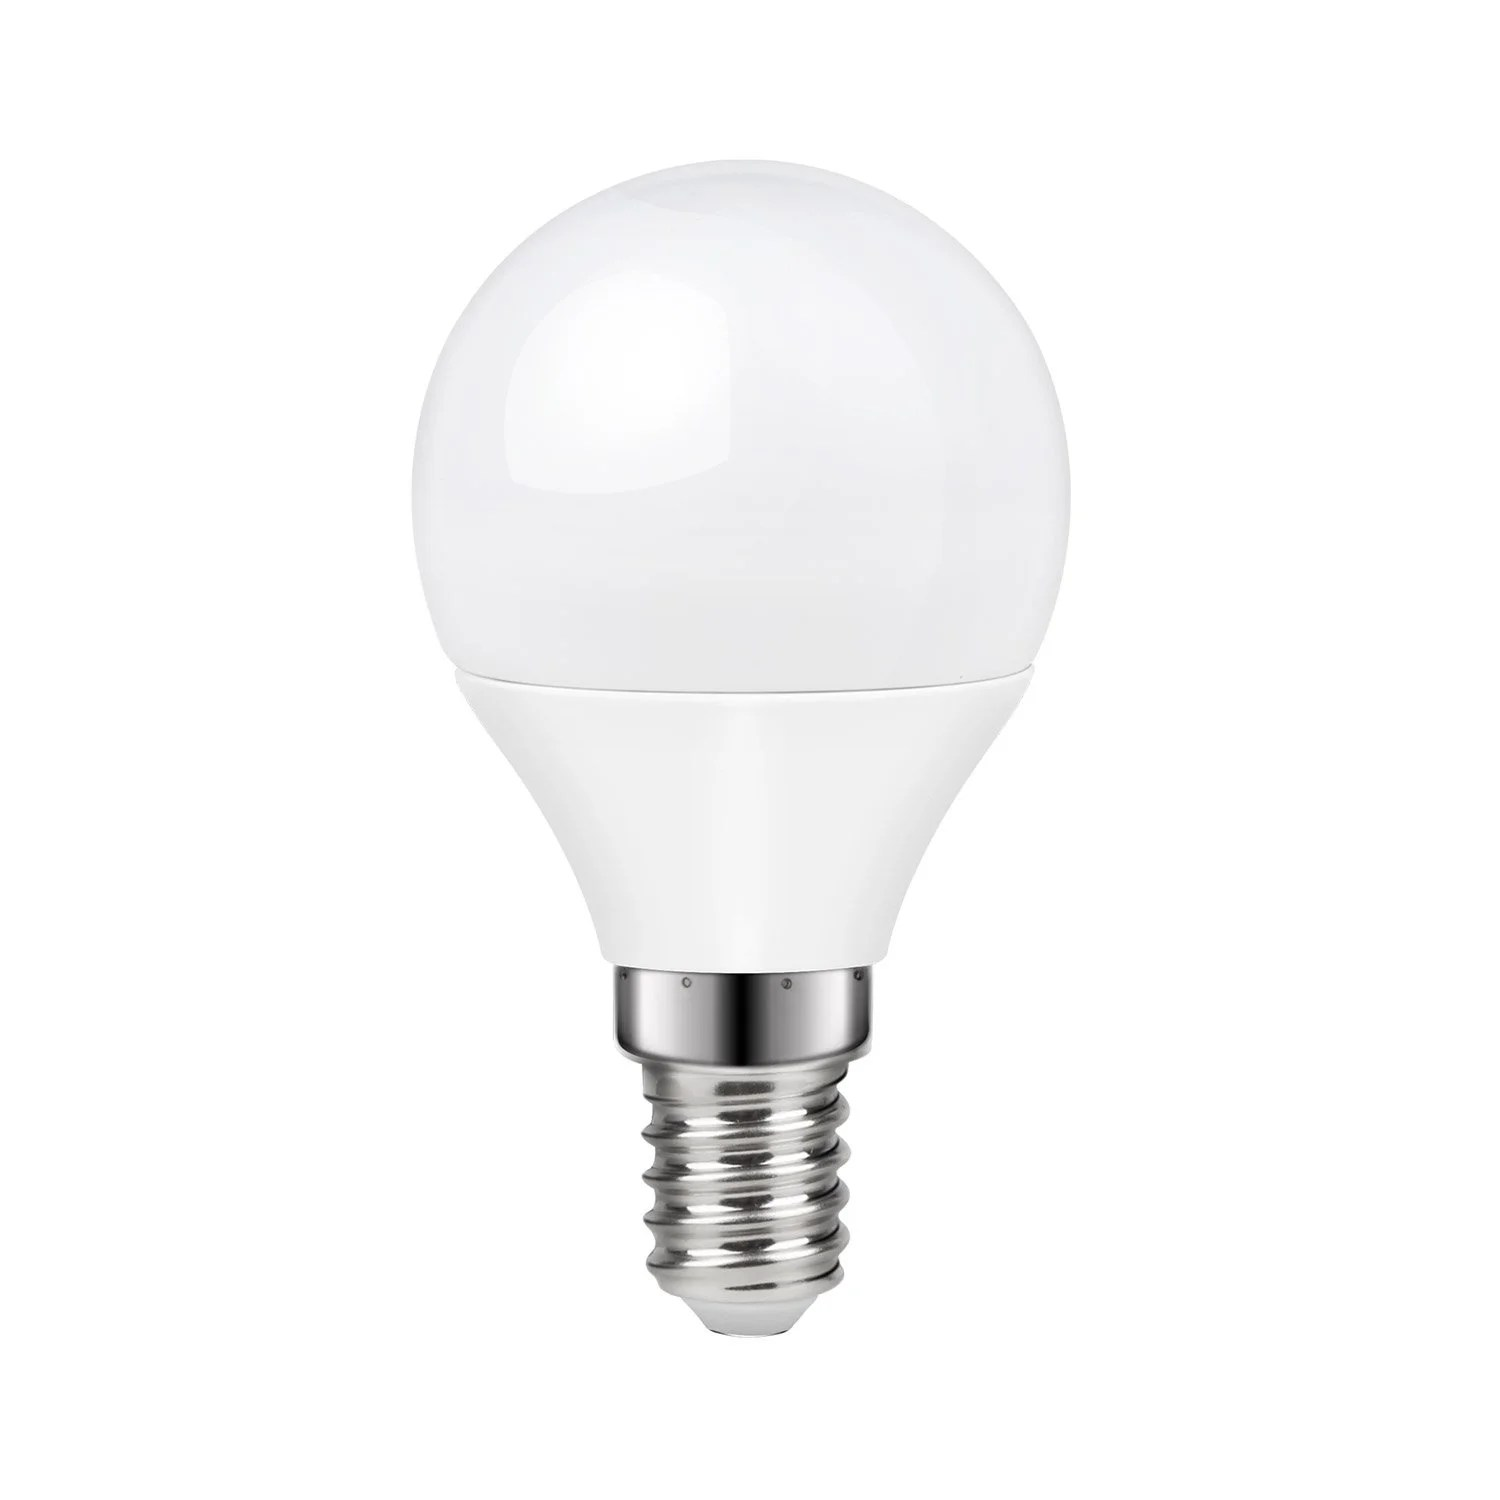 Ampoule Led Leroy Merlin Ampoule Led E14 Leroy Merlin